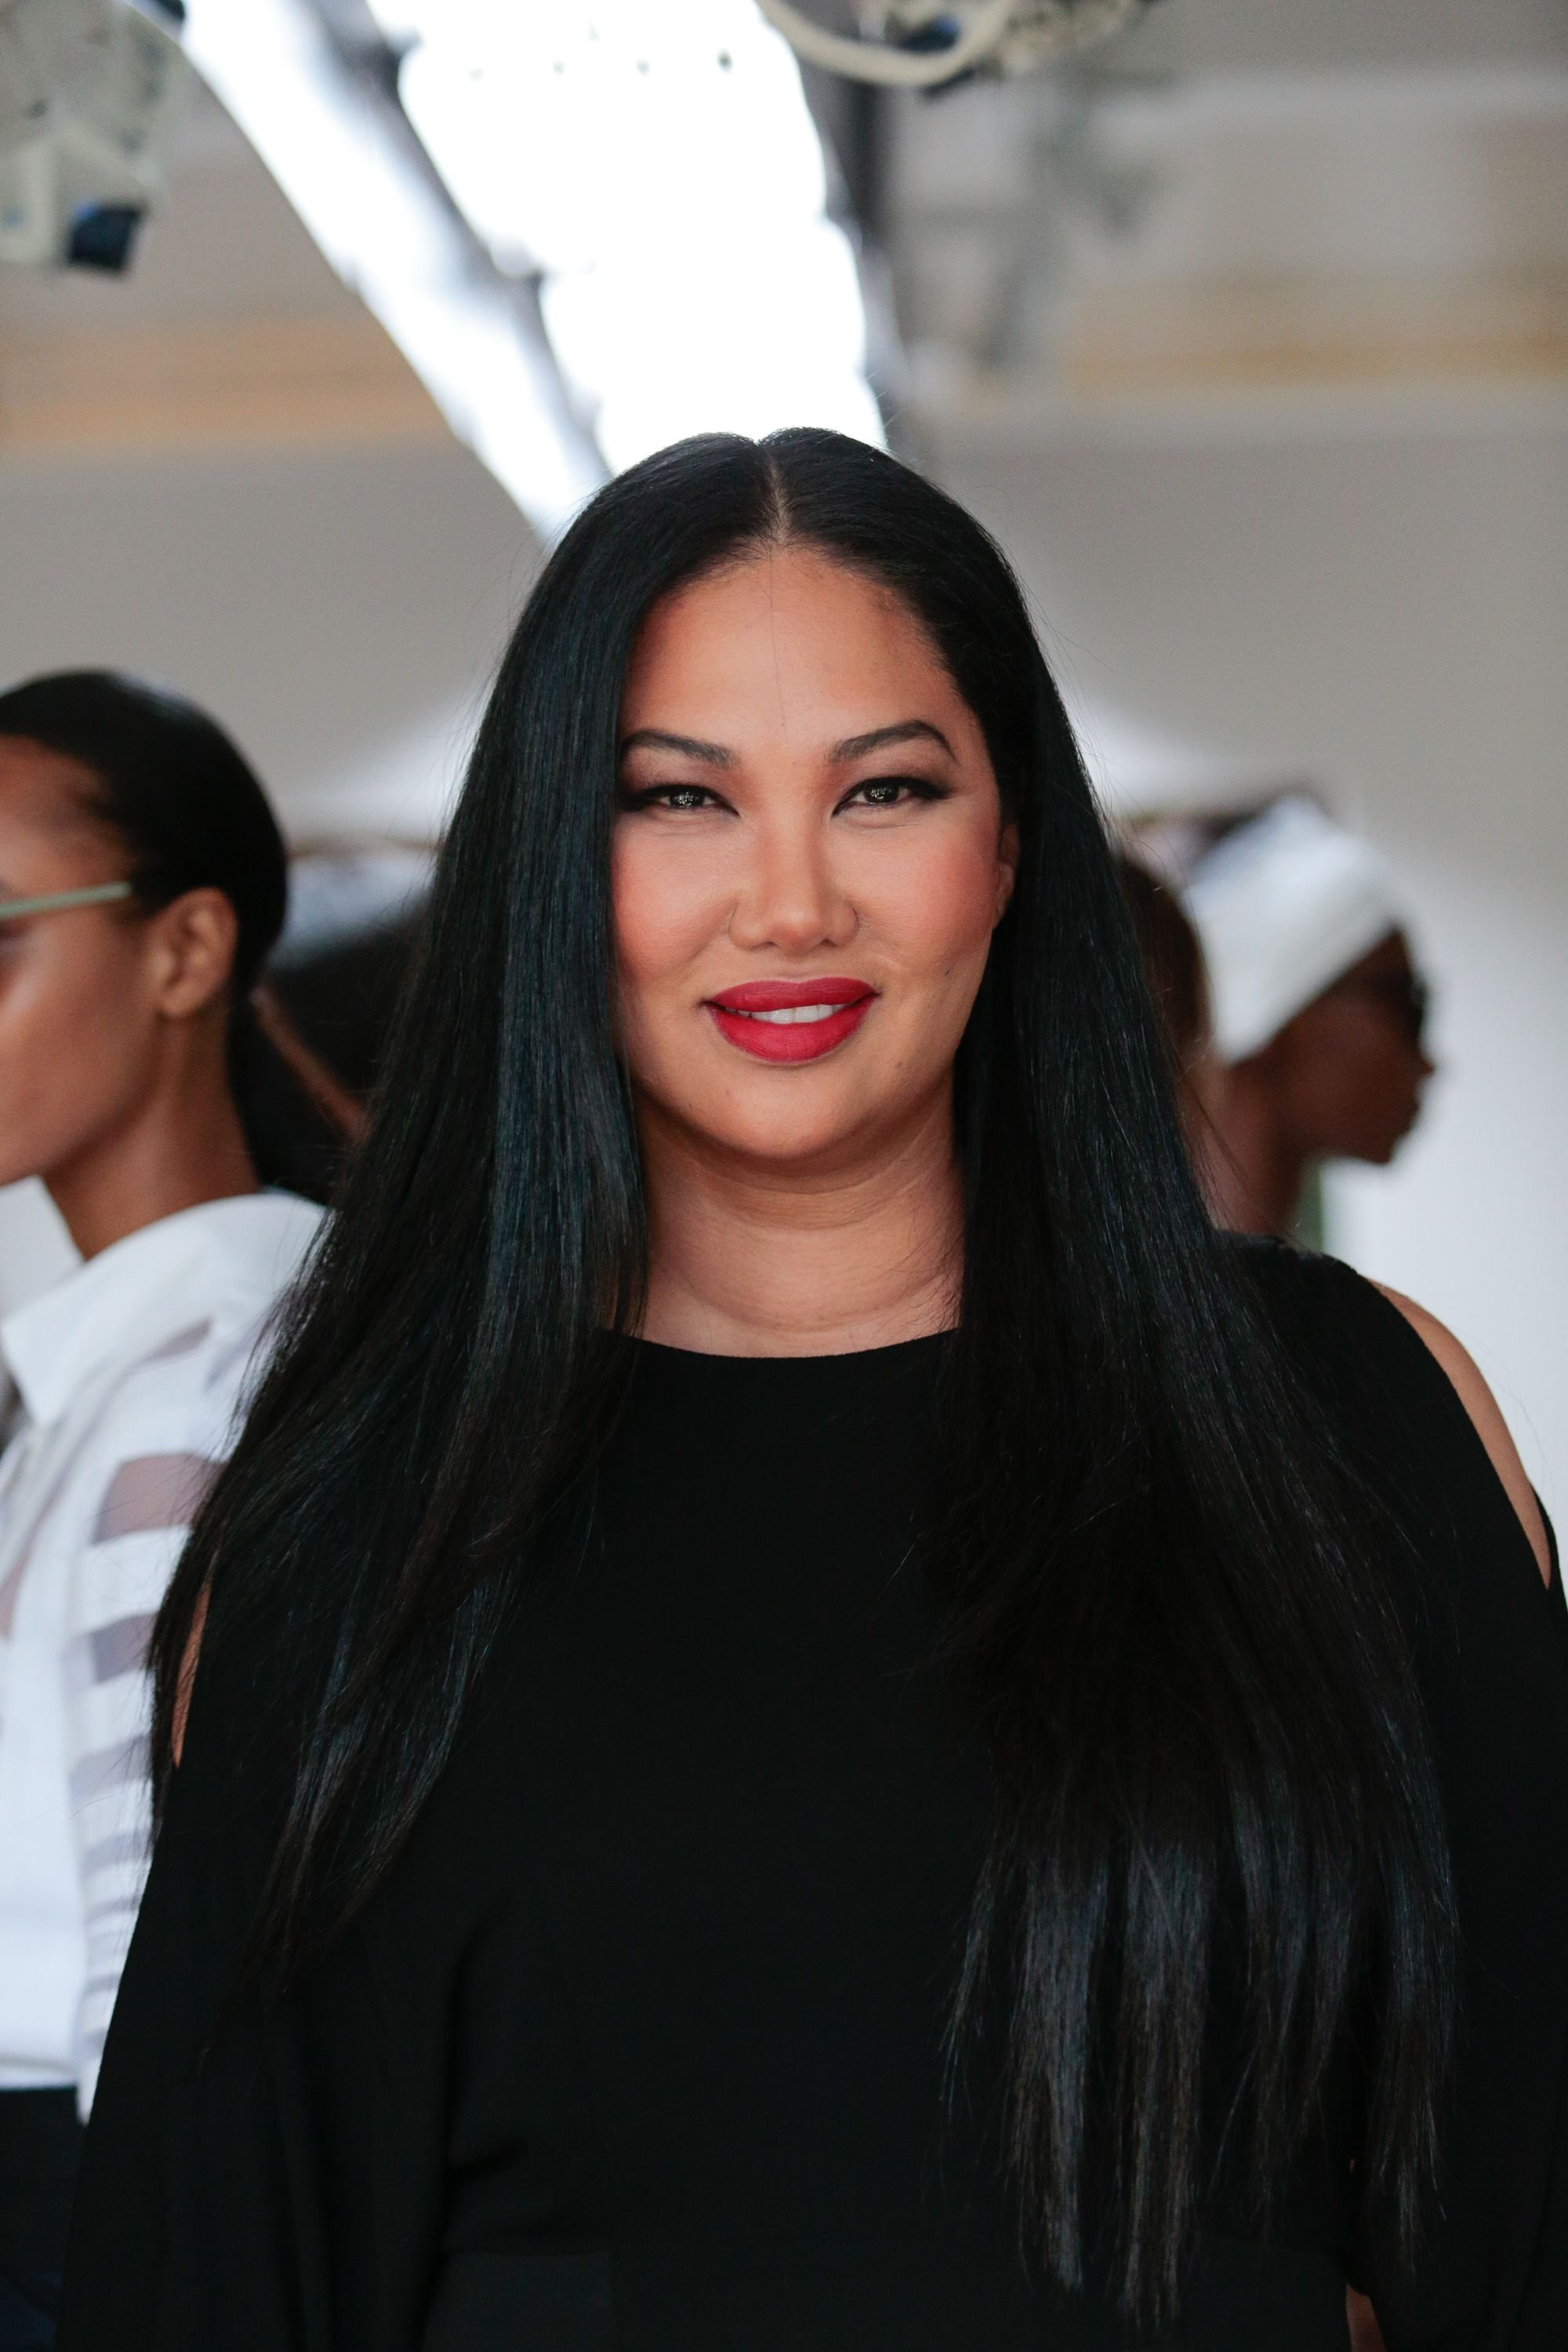 Kimora Lee Simmons attends the New York Fashion Week at The Gallery, Skylight at Clarkson Square on September 14, 2016. | Photo: Getty Images